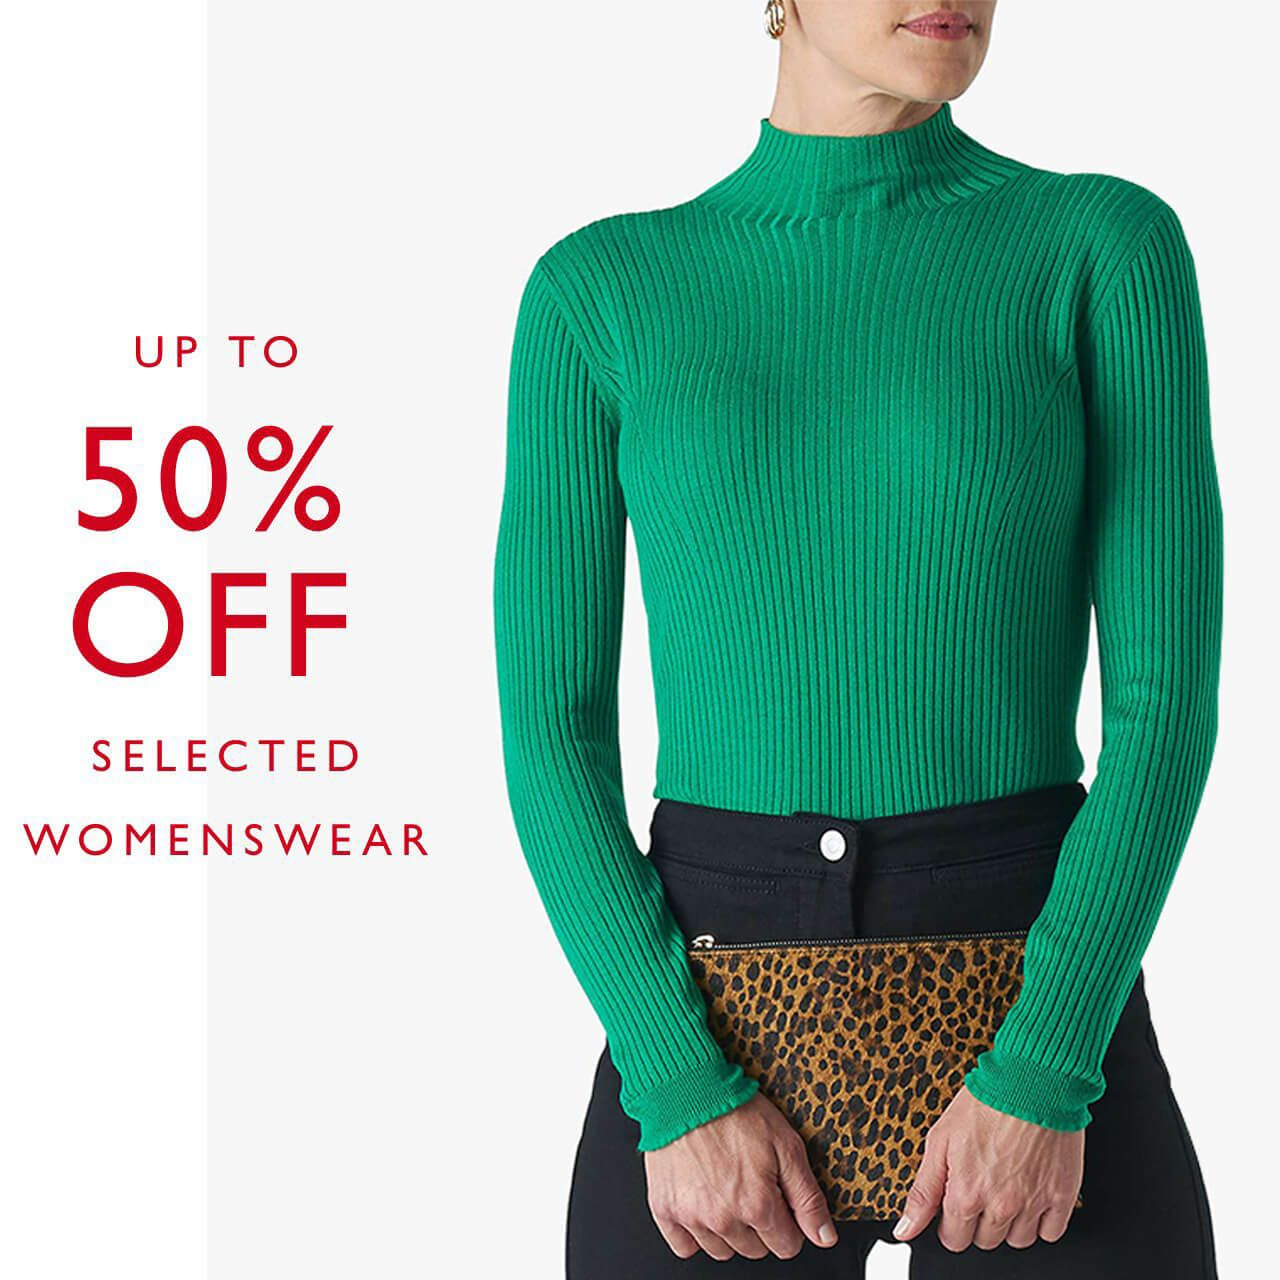 Womenswear offers